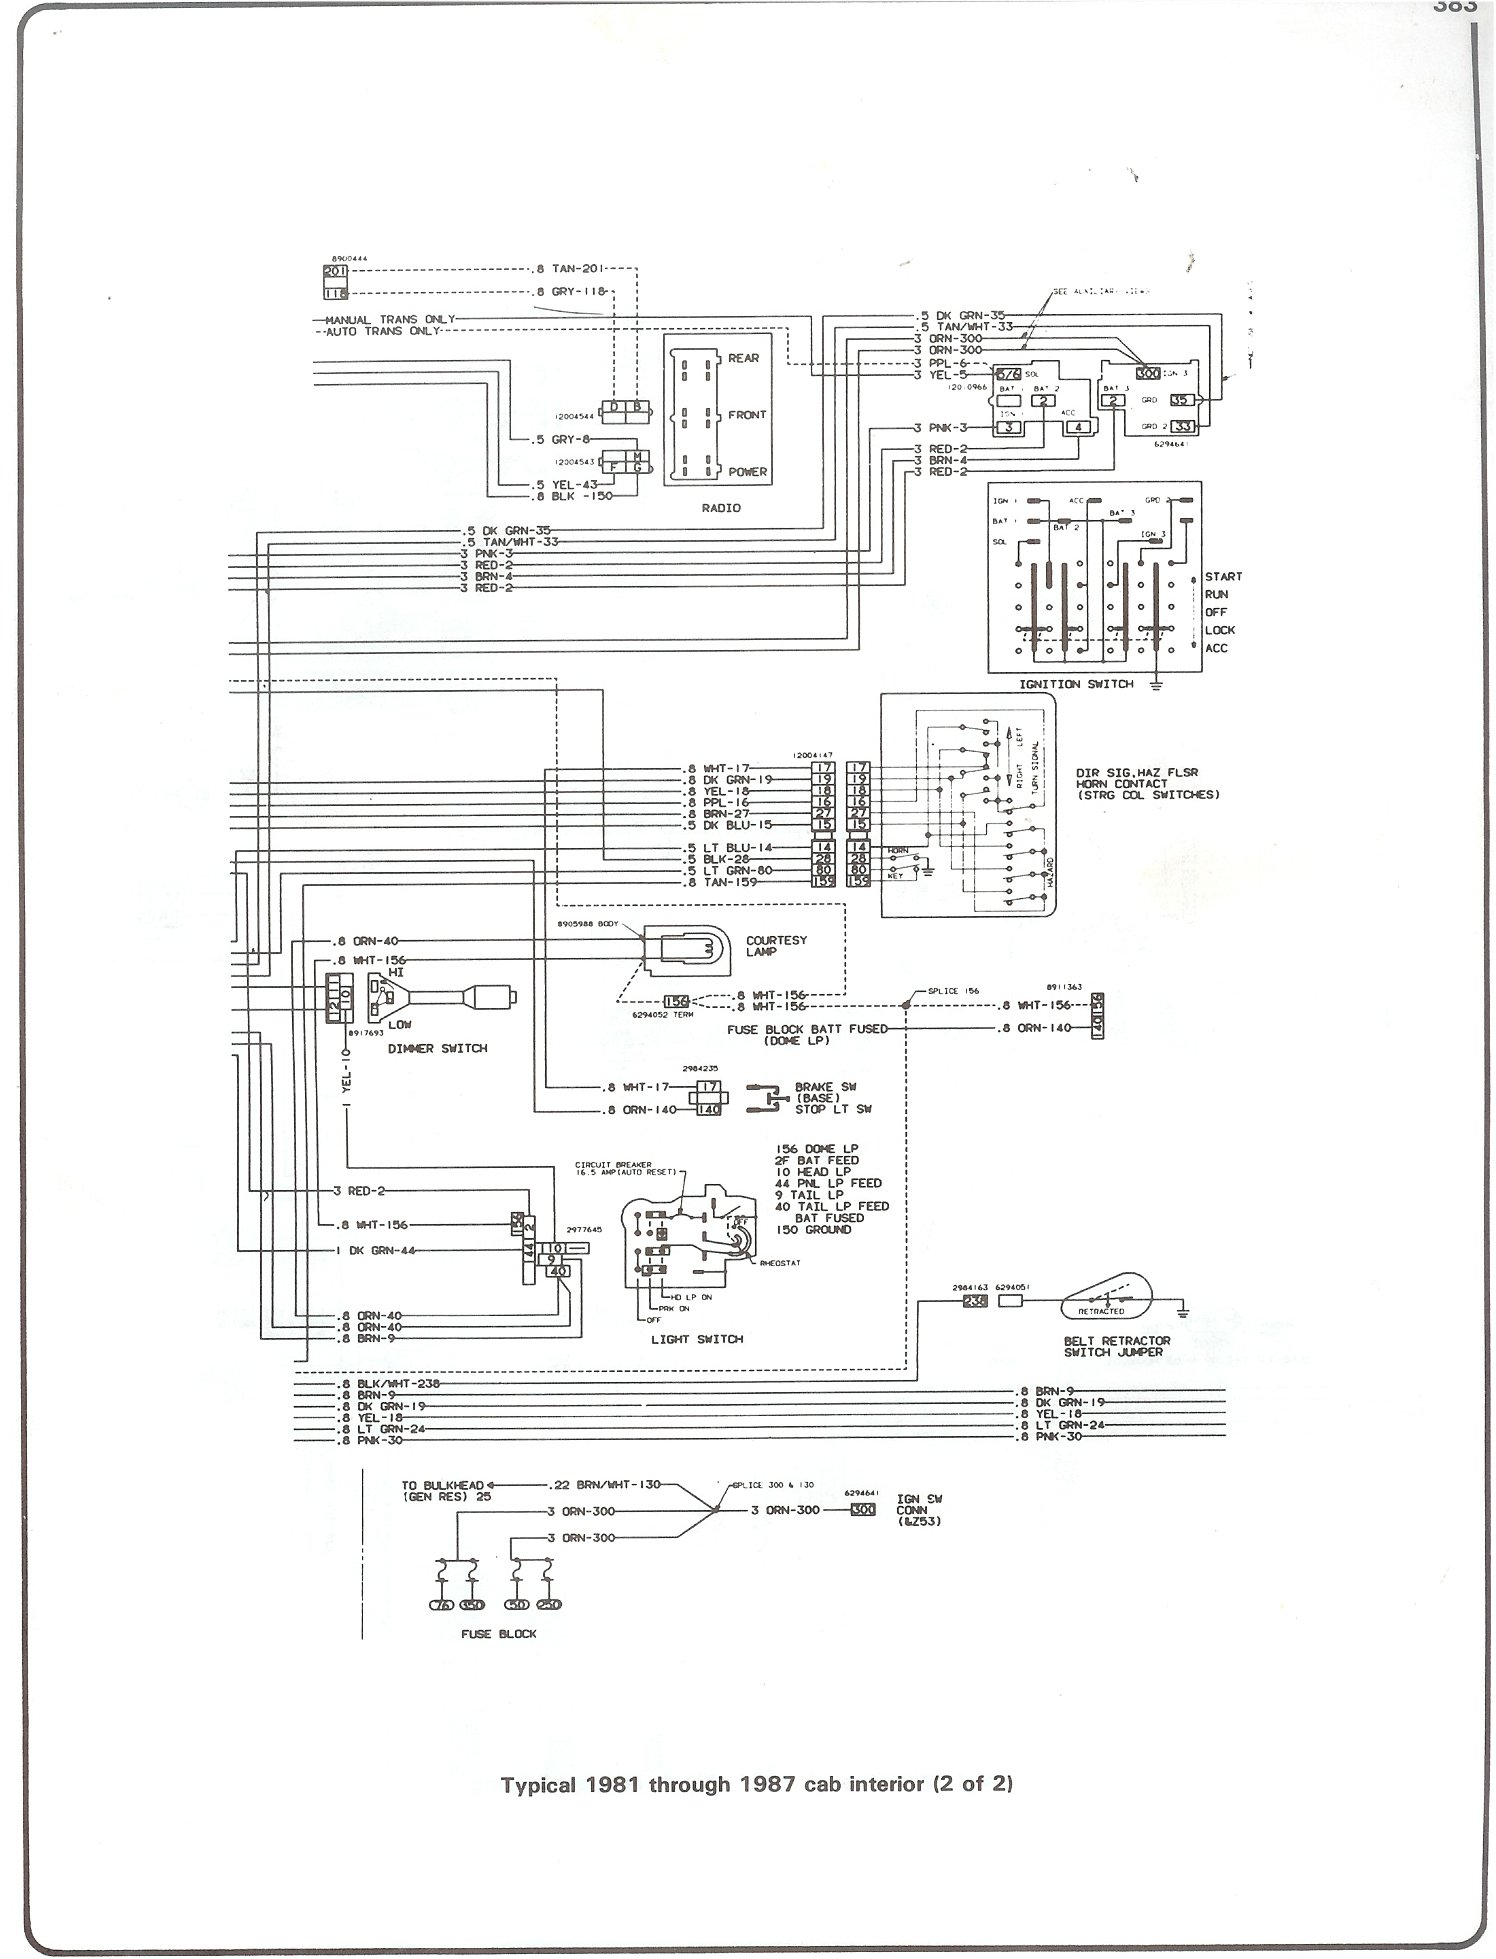 brake light switch wiring diagram blazer forum chevy blazer 81 87 i6 engine compartment · 81 87 v8 engine compartment · 81 87 instrument panel page 1 · 81 87 instrument panel page 2 · 81 87 computer control wiring